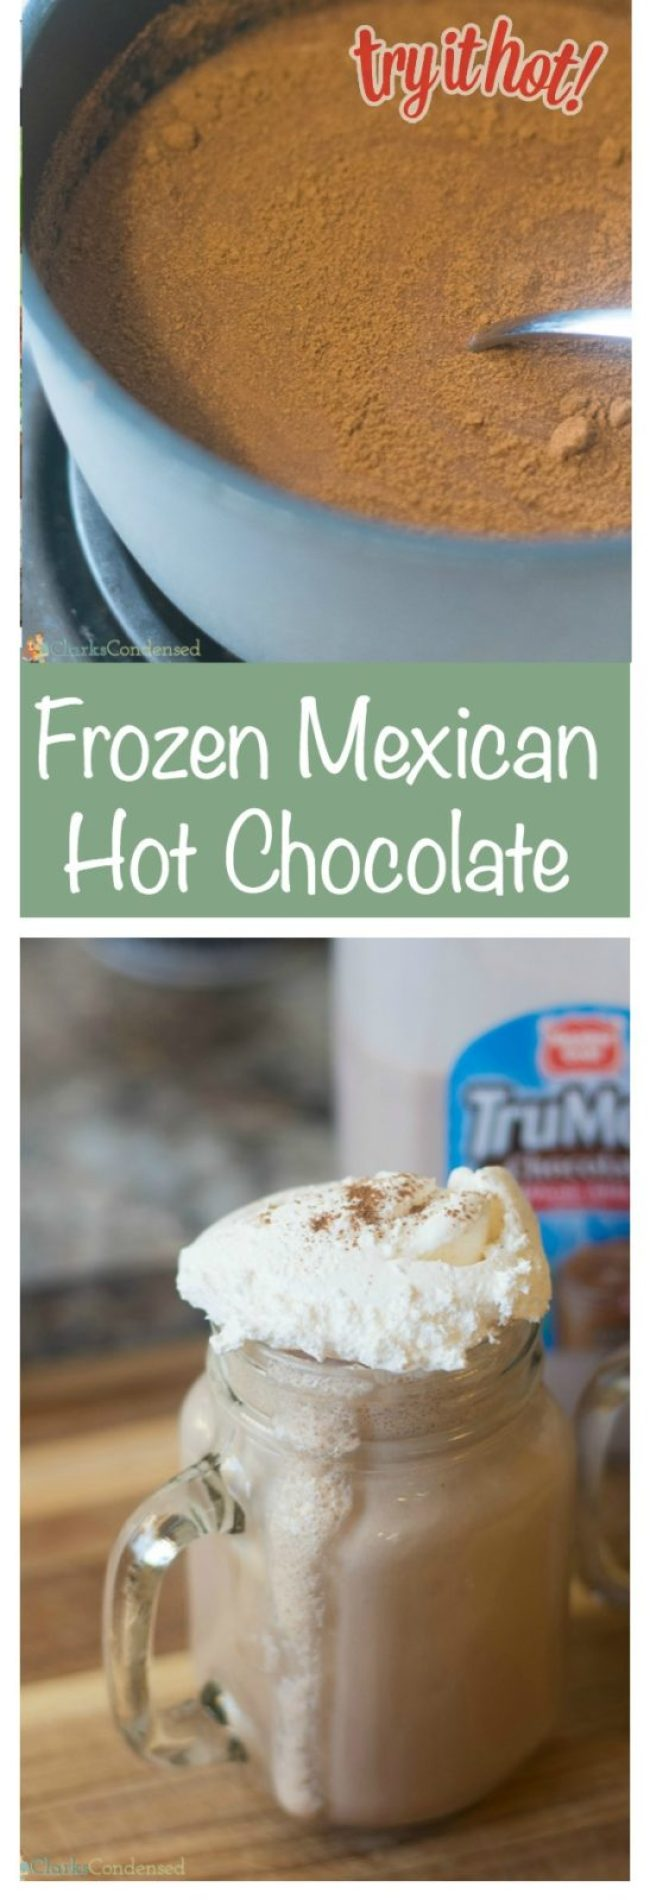 frozen-mexican-hot-chocolate